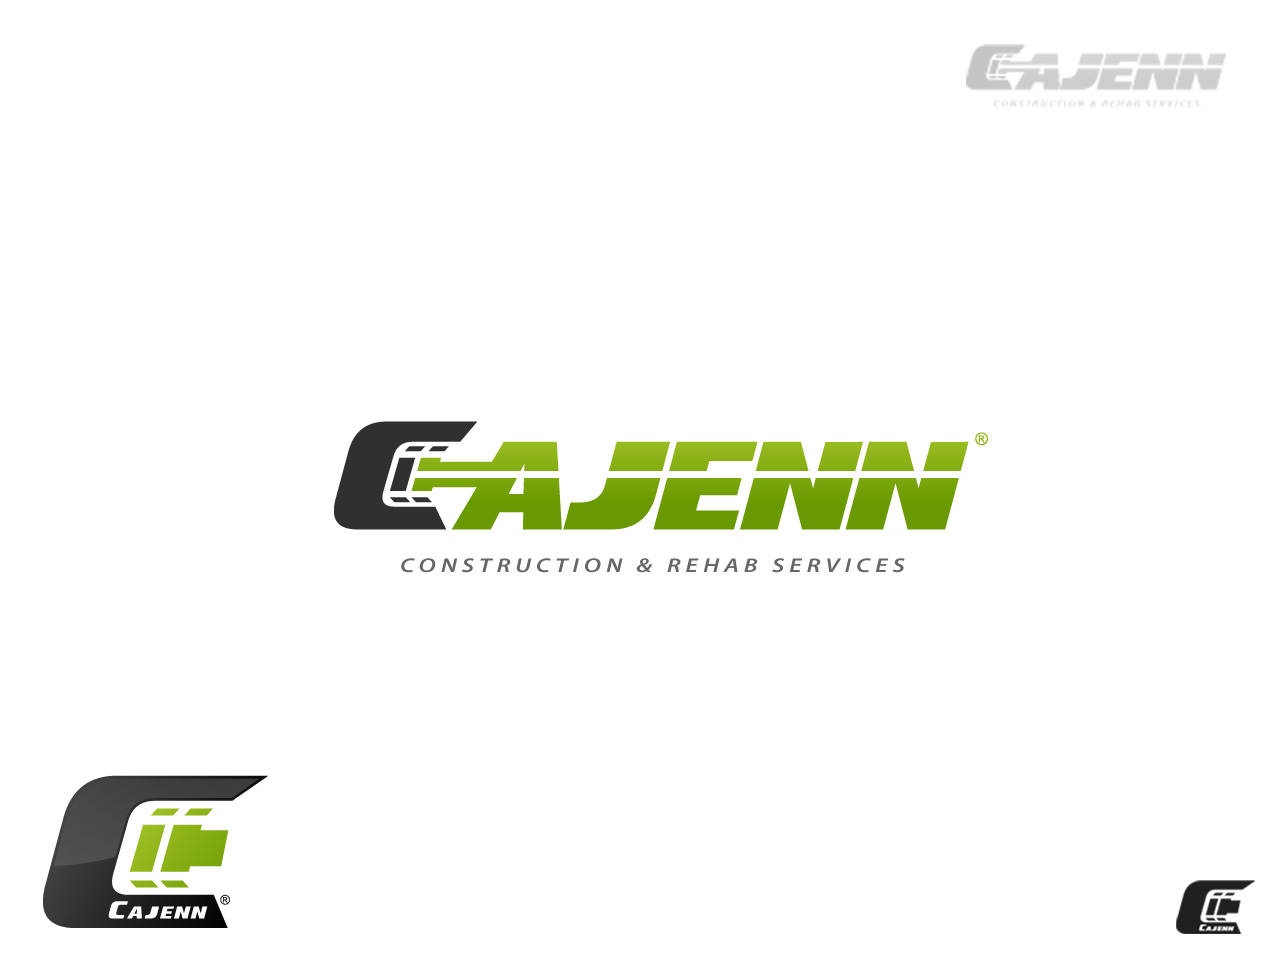 Logo Design by jpbituin - Entry No. 276 in the Logo Design Contest New Logo Design for CaJenn Construction & Rehab Services.